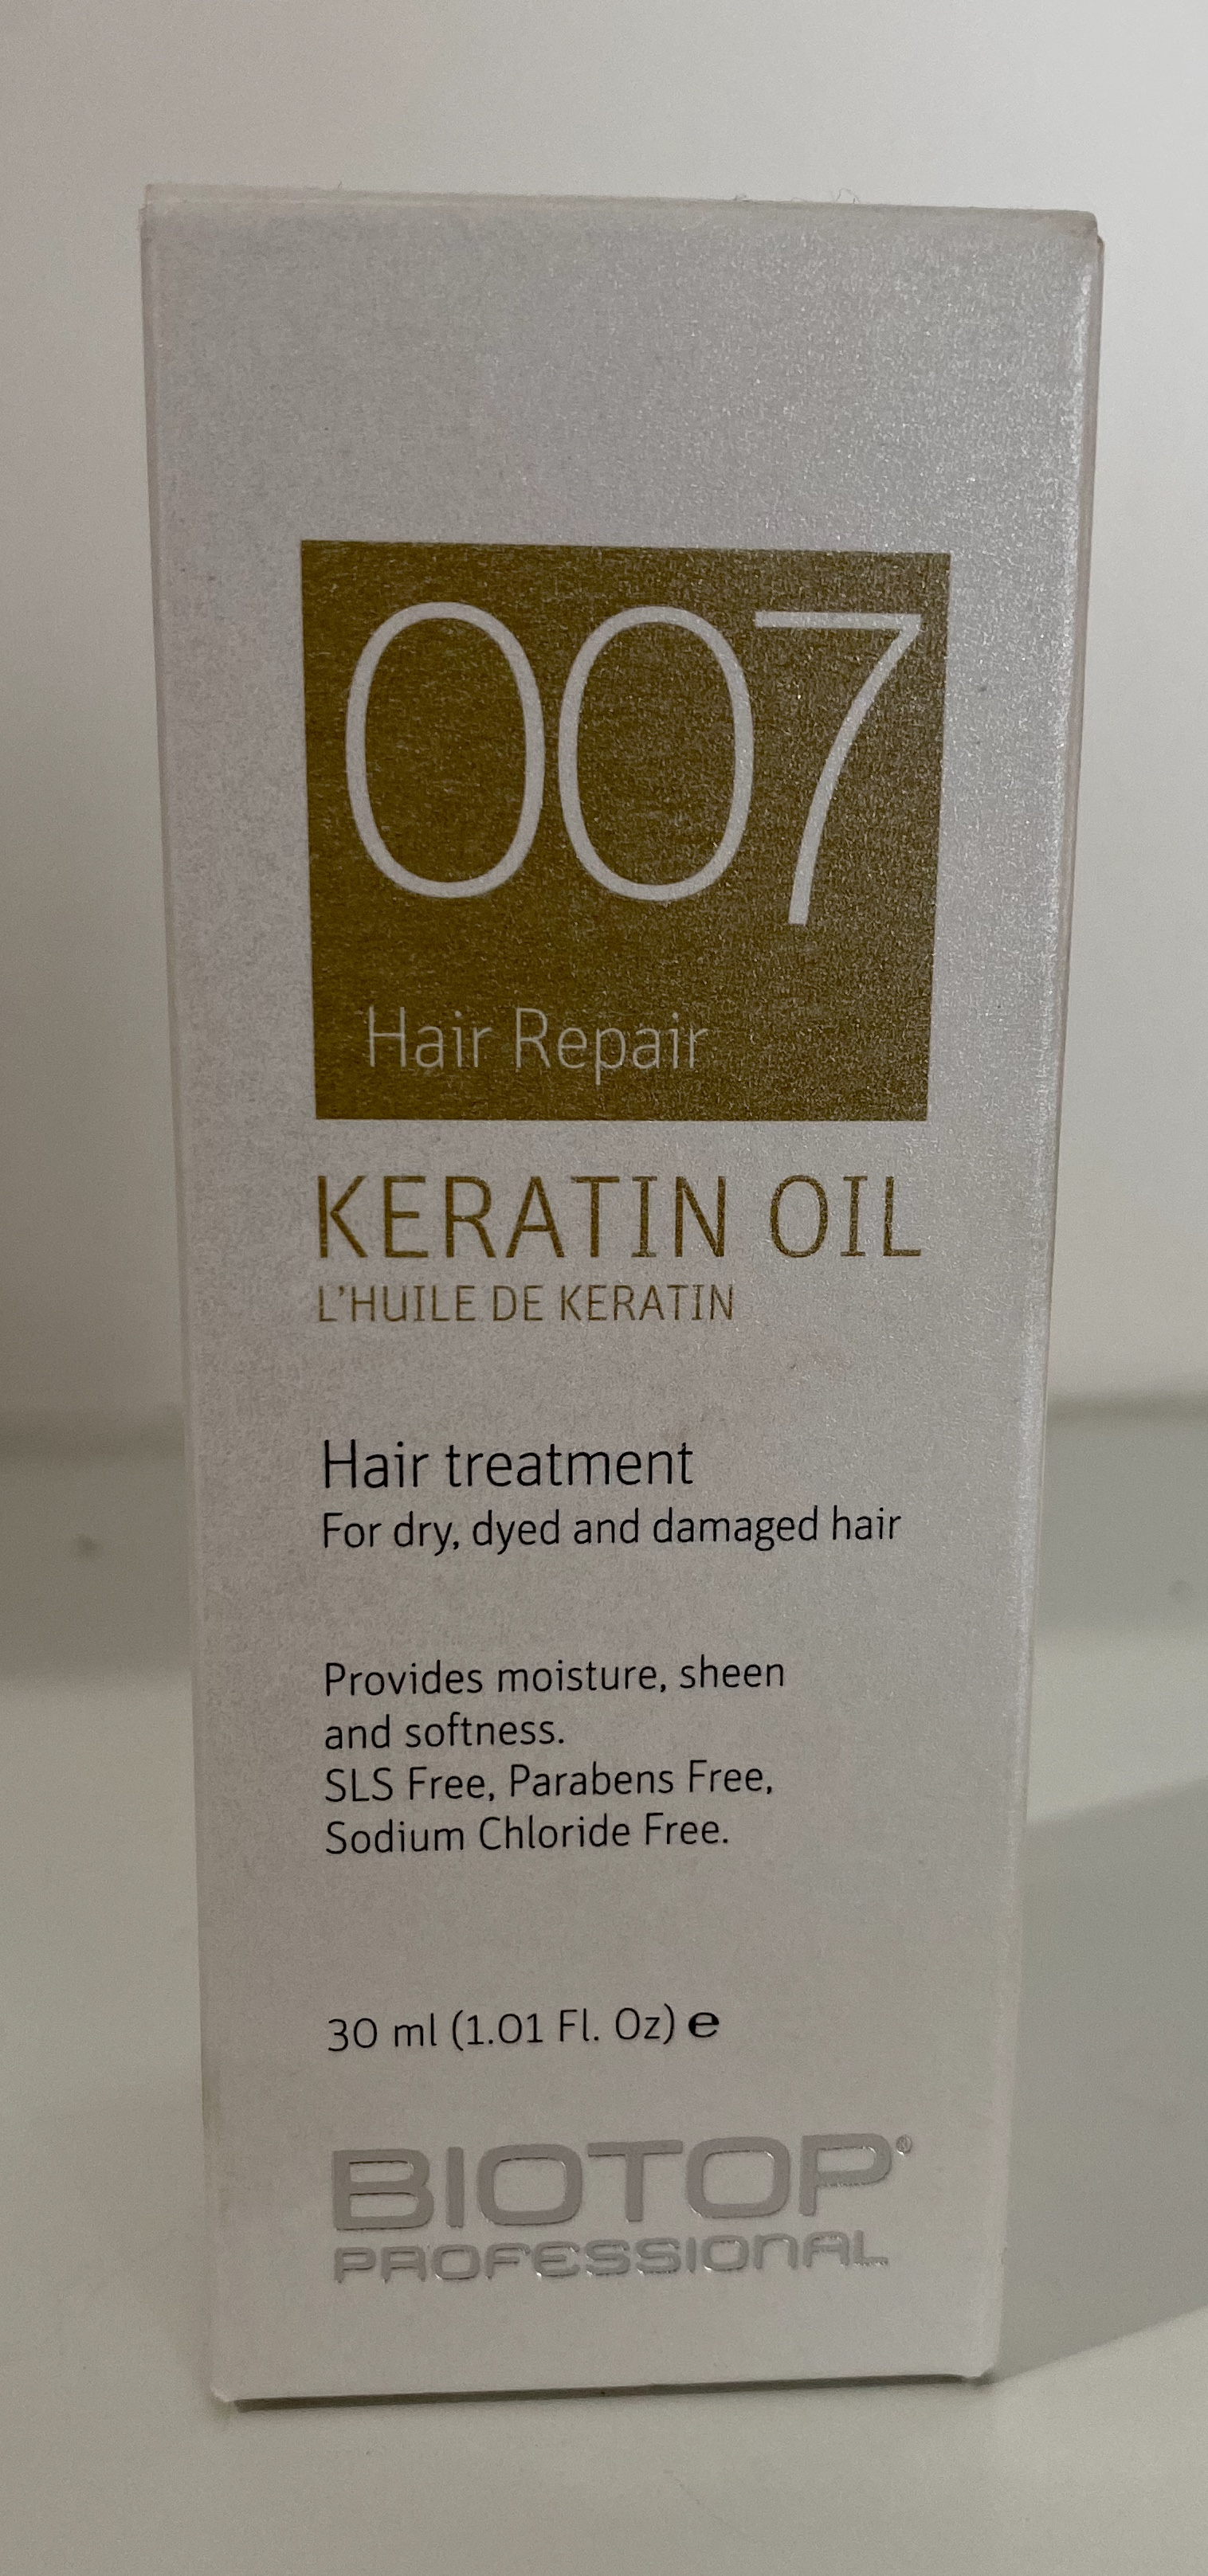 007 Keratin Oil Treatment